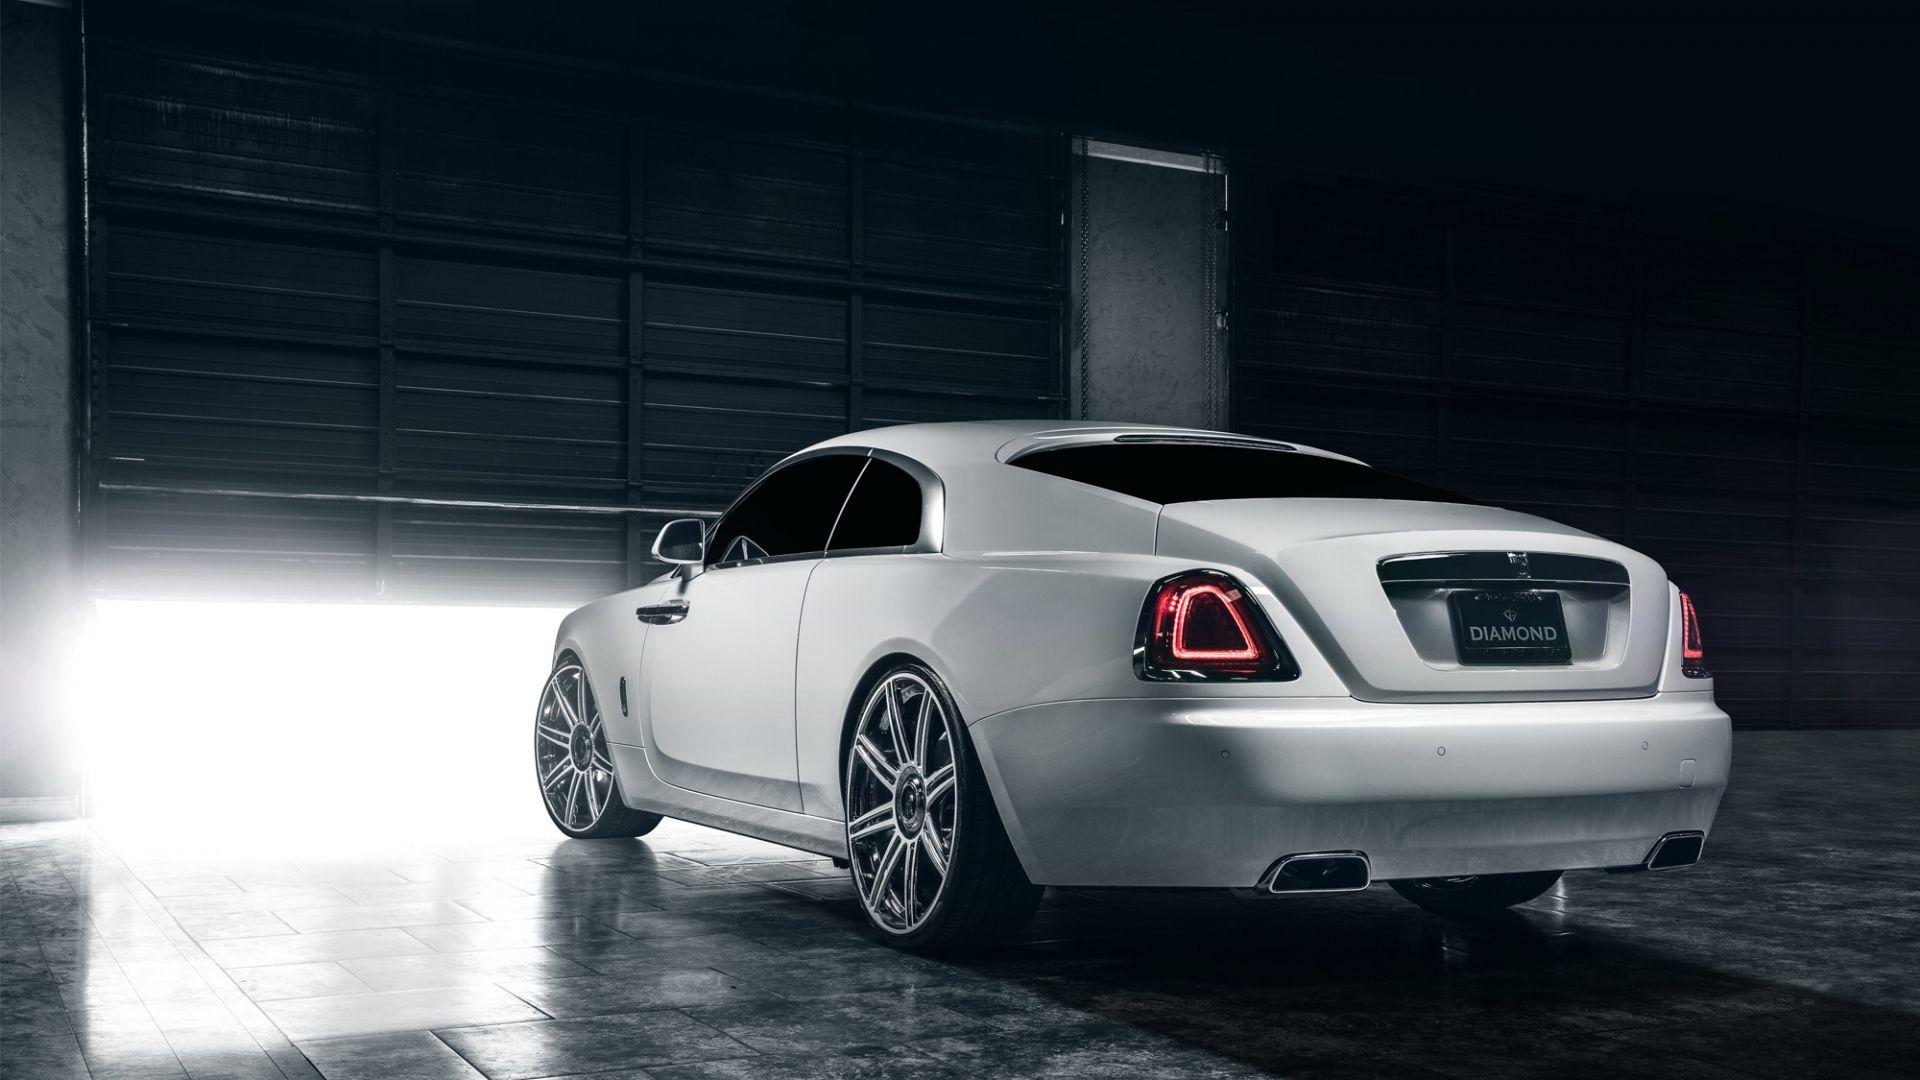 Download Wallpapers 1920x1080 Rolls royce, Wraith, White, Rear view